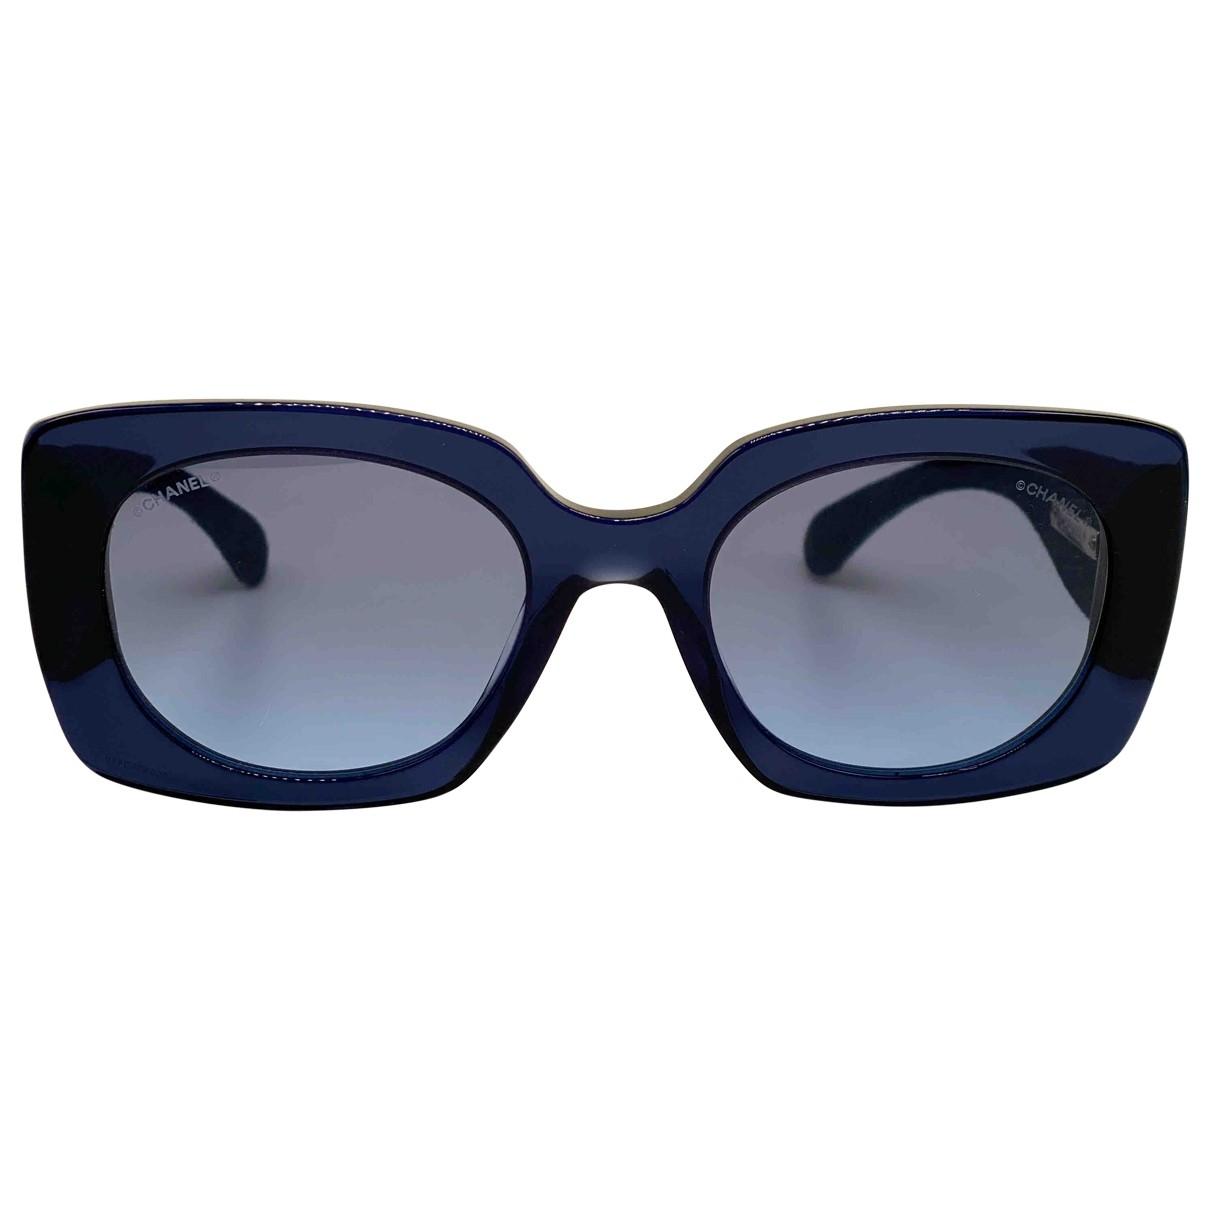 Chanel \N Blue Sunglasses for Women \N